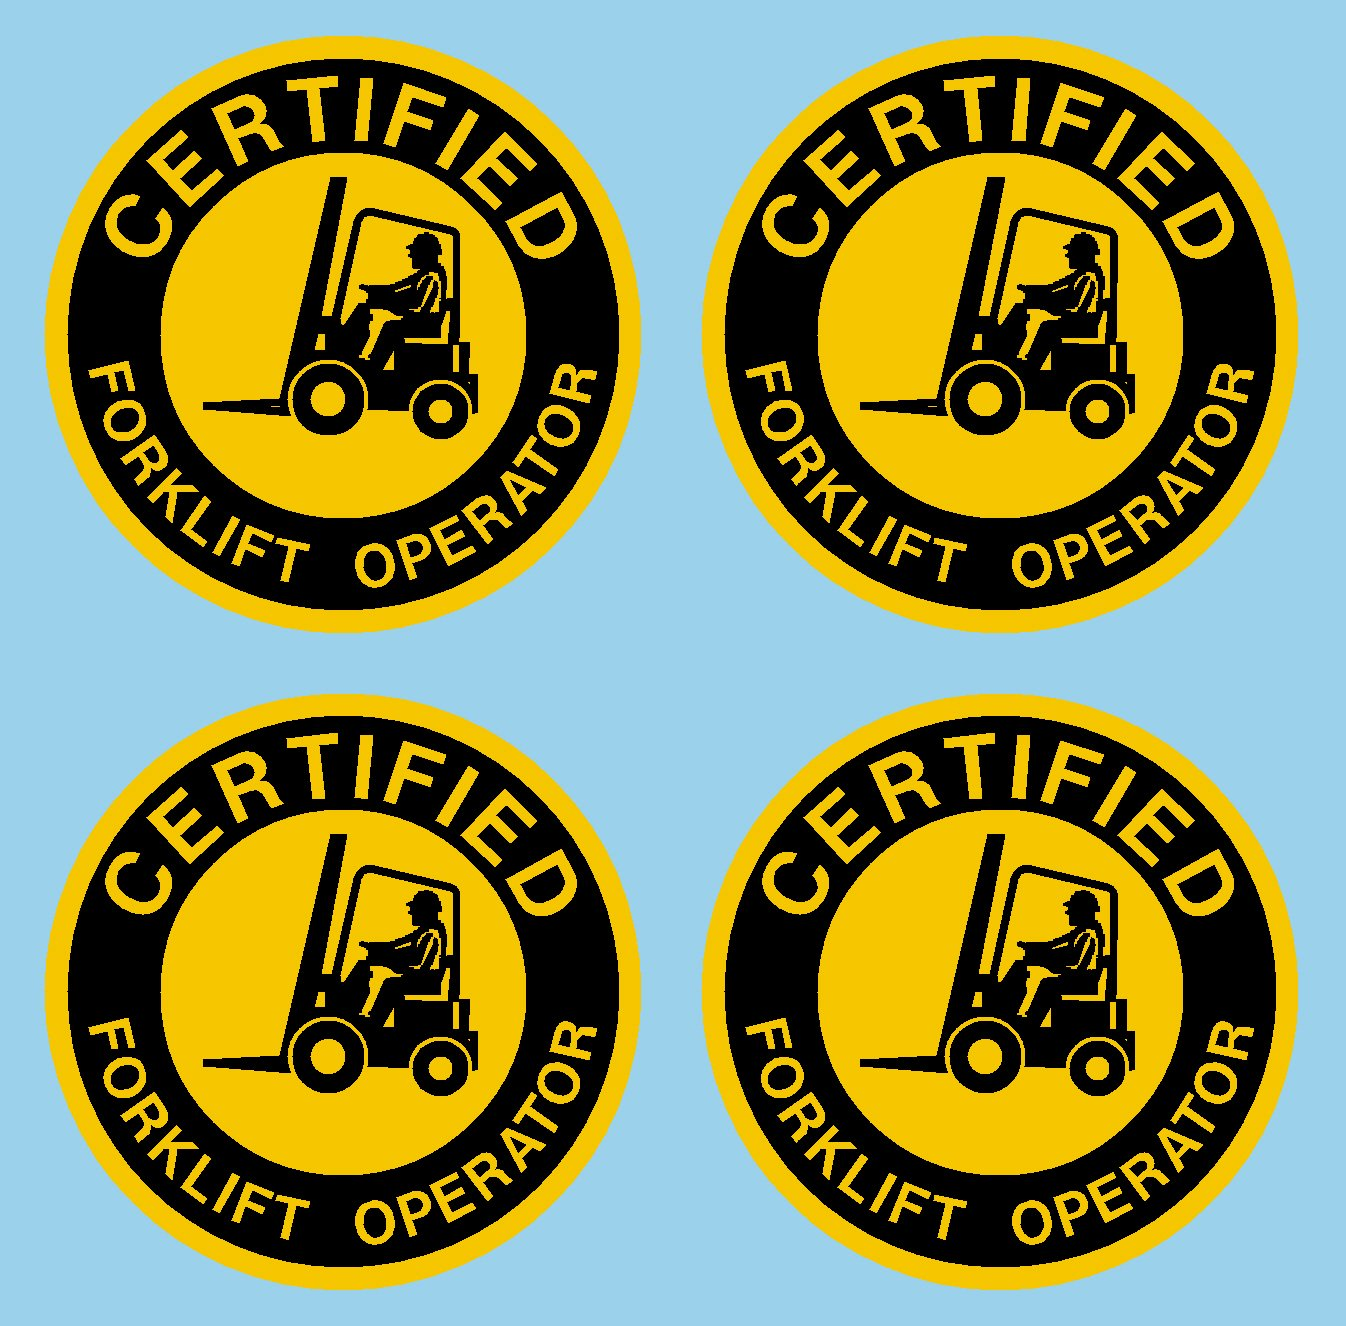 Certified Forklift Operator Hard Hat Hardhat Decal Sticker Placard 2